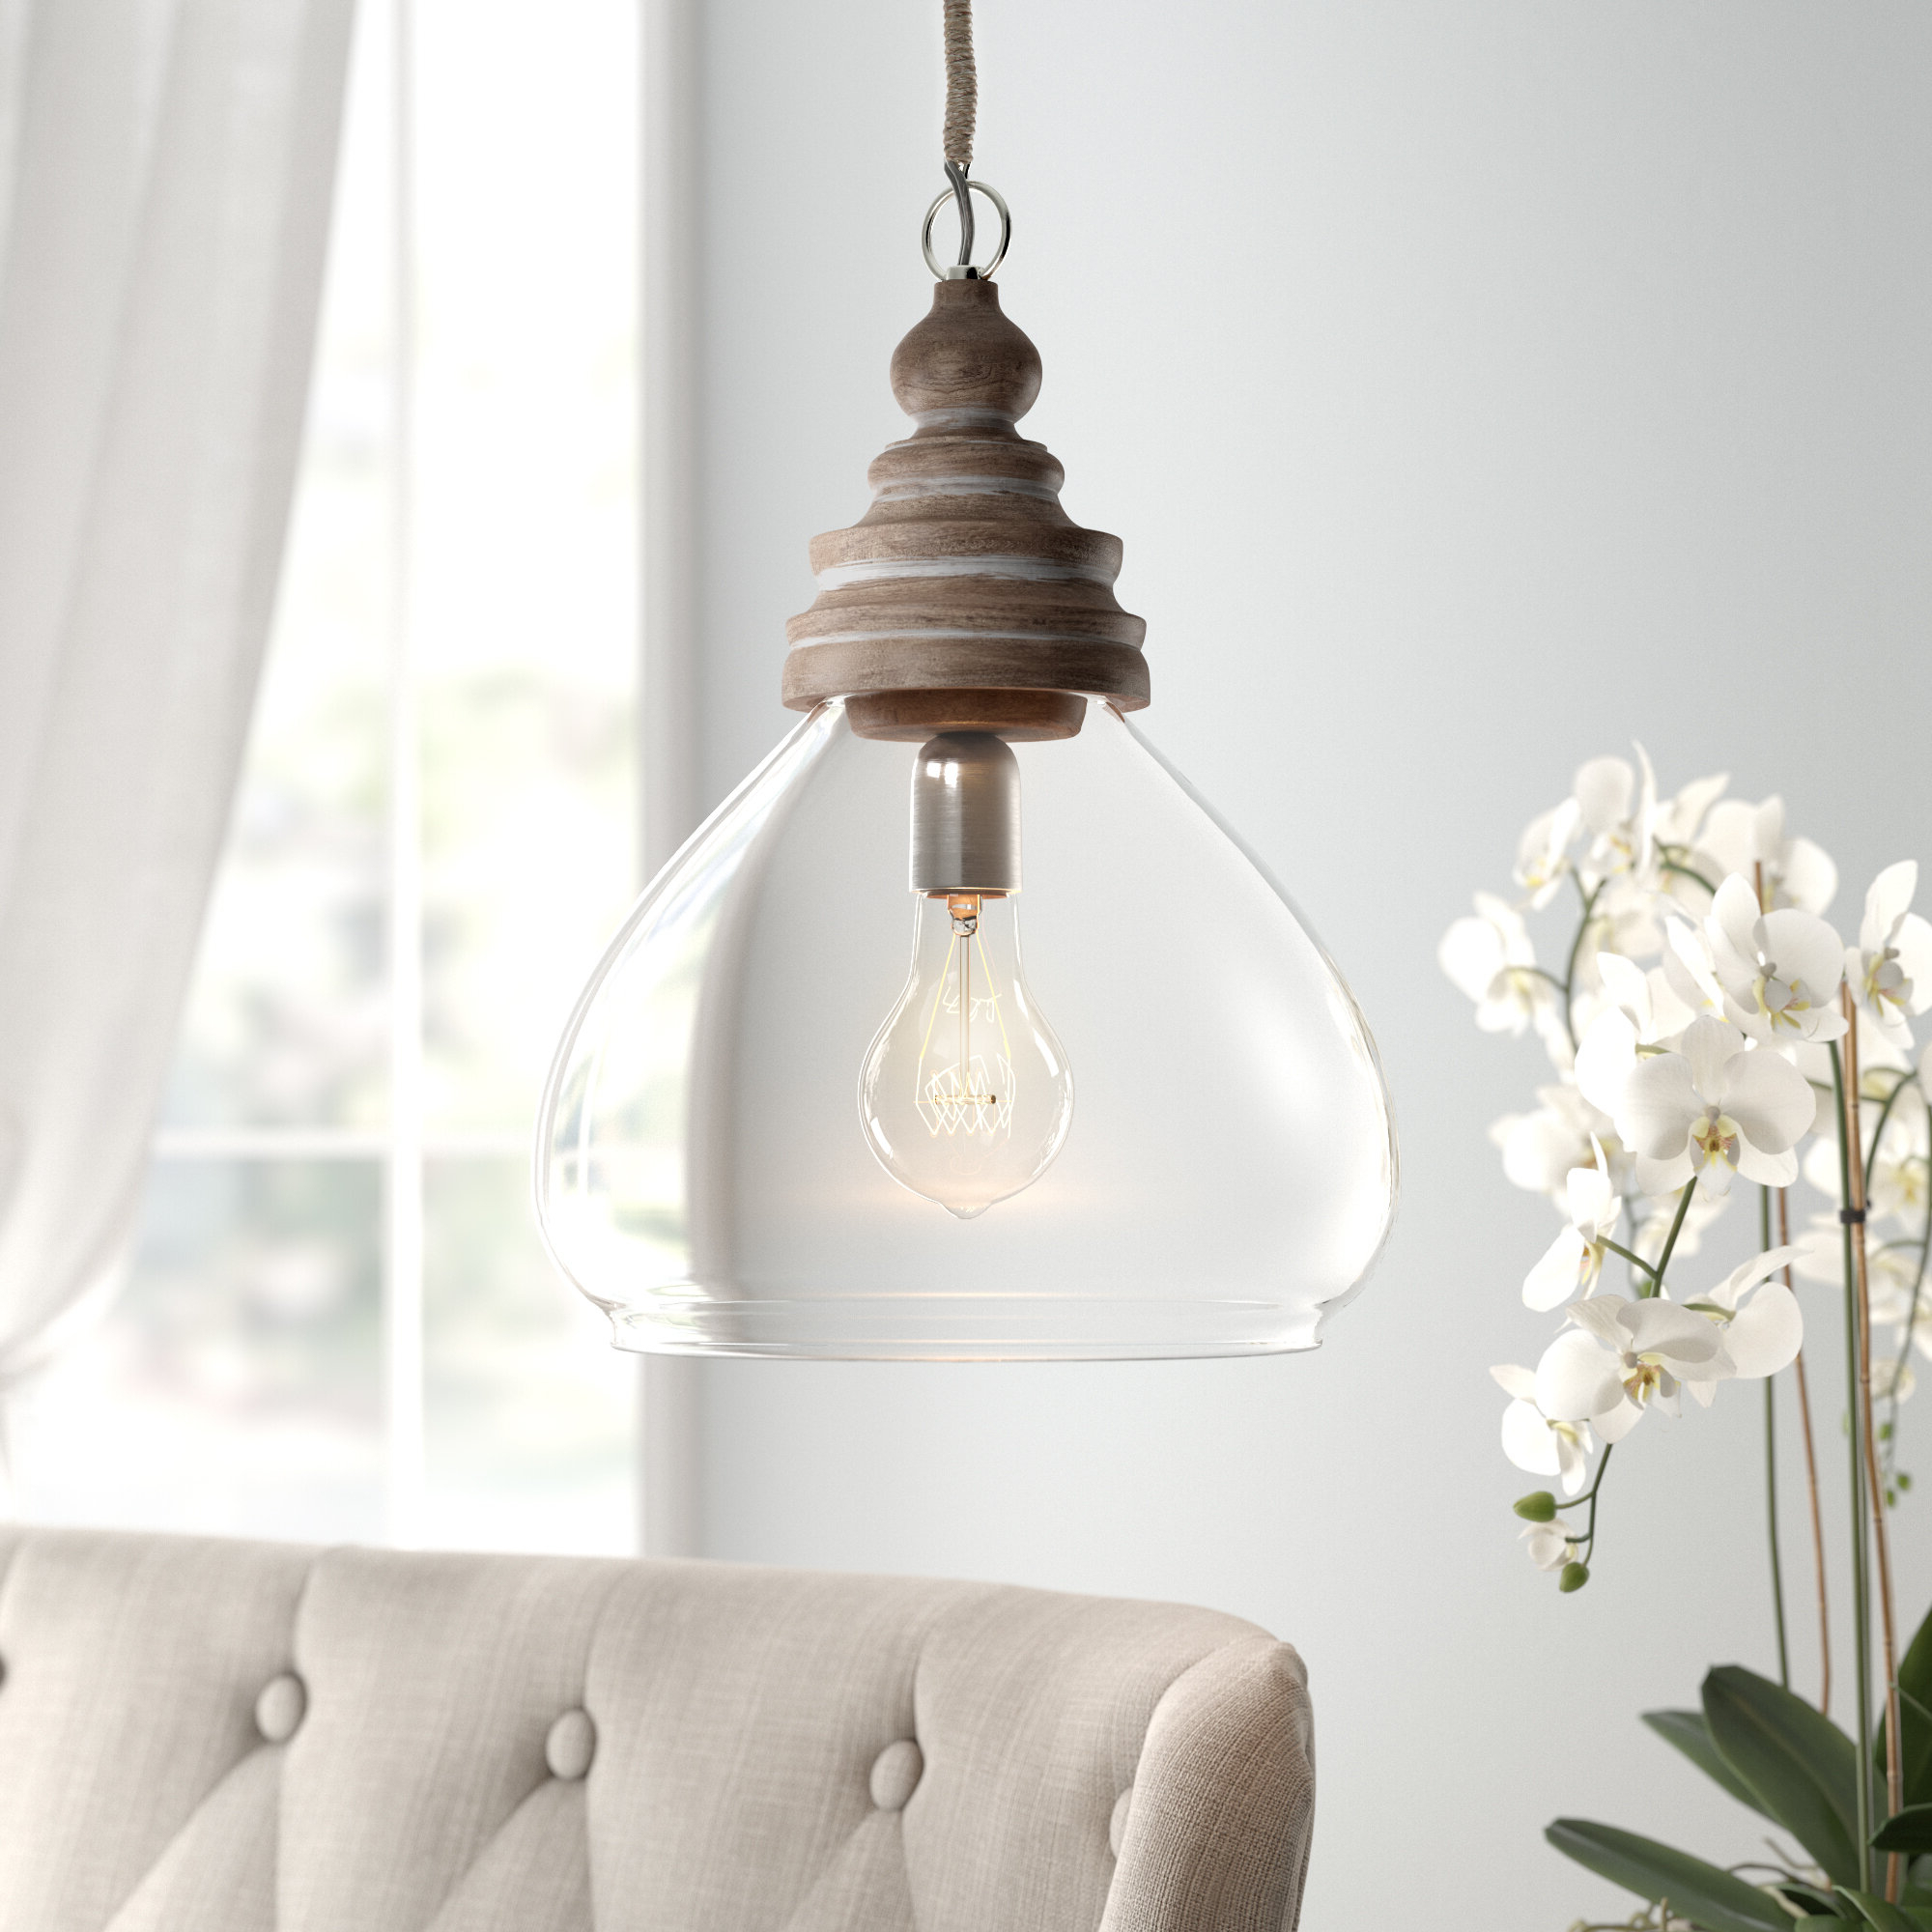 Abordale 1 Light Single Dome Pendants Within Newest Brisa 1 Light Single Dome Pendant (View 5 of 20)